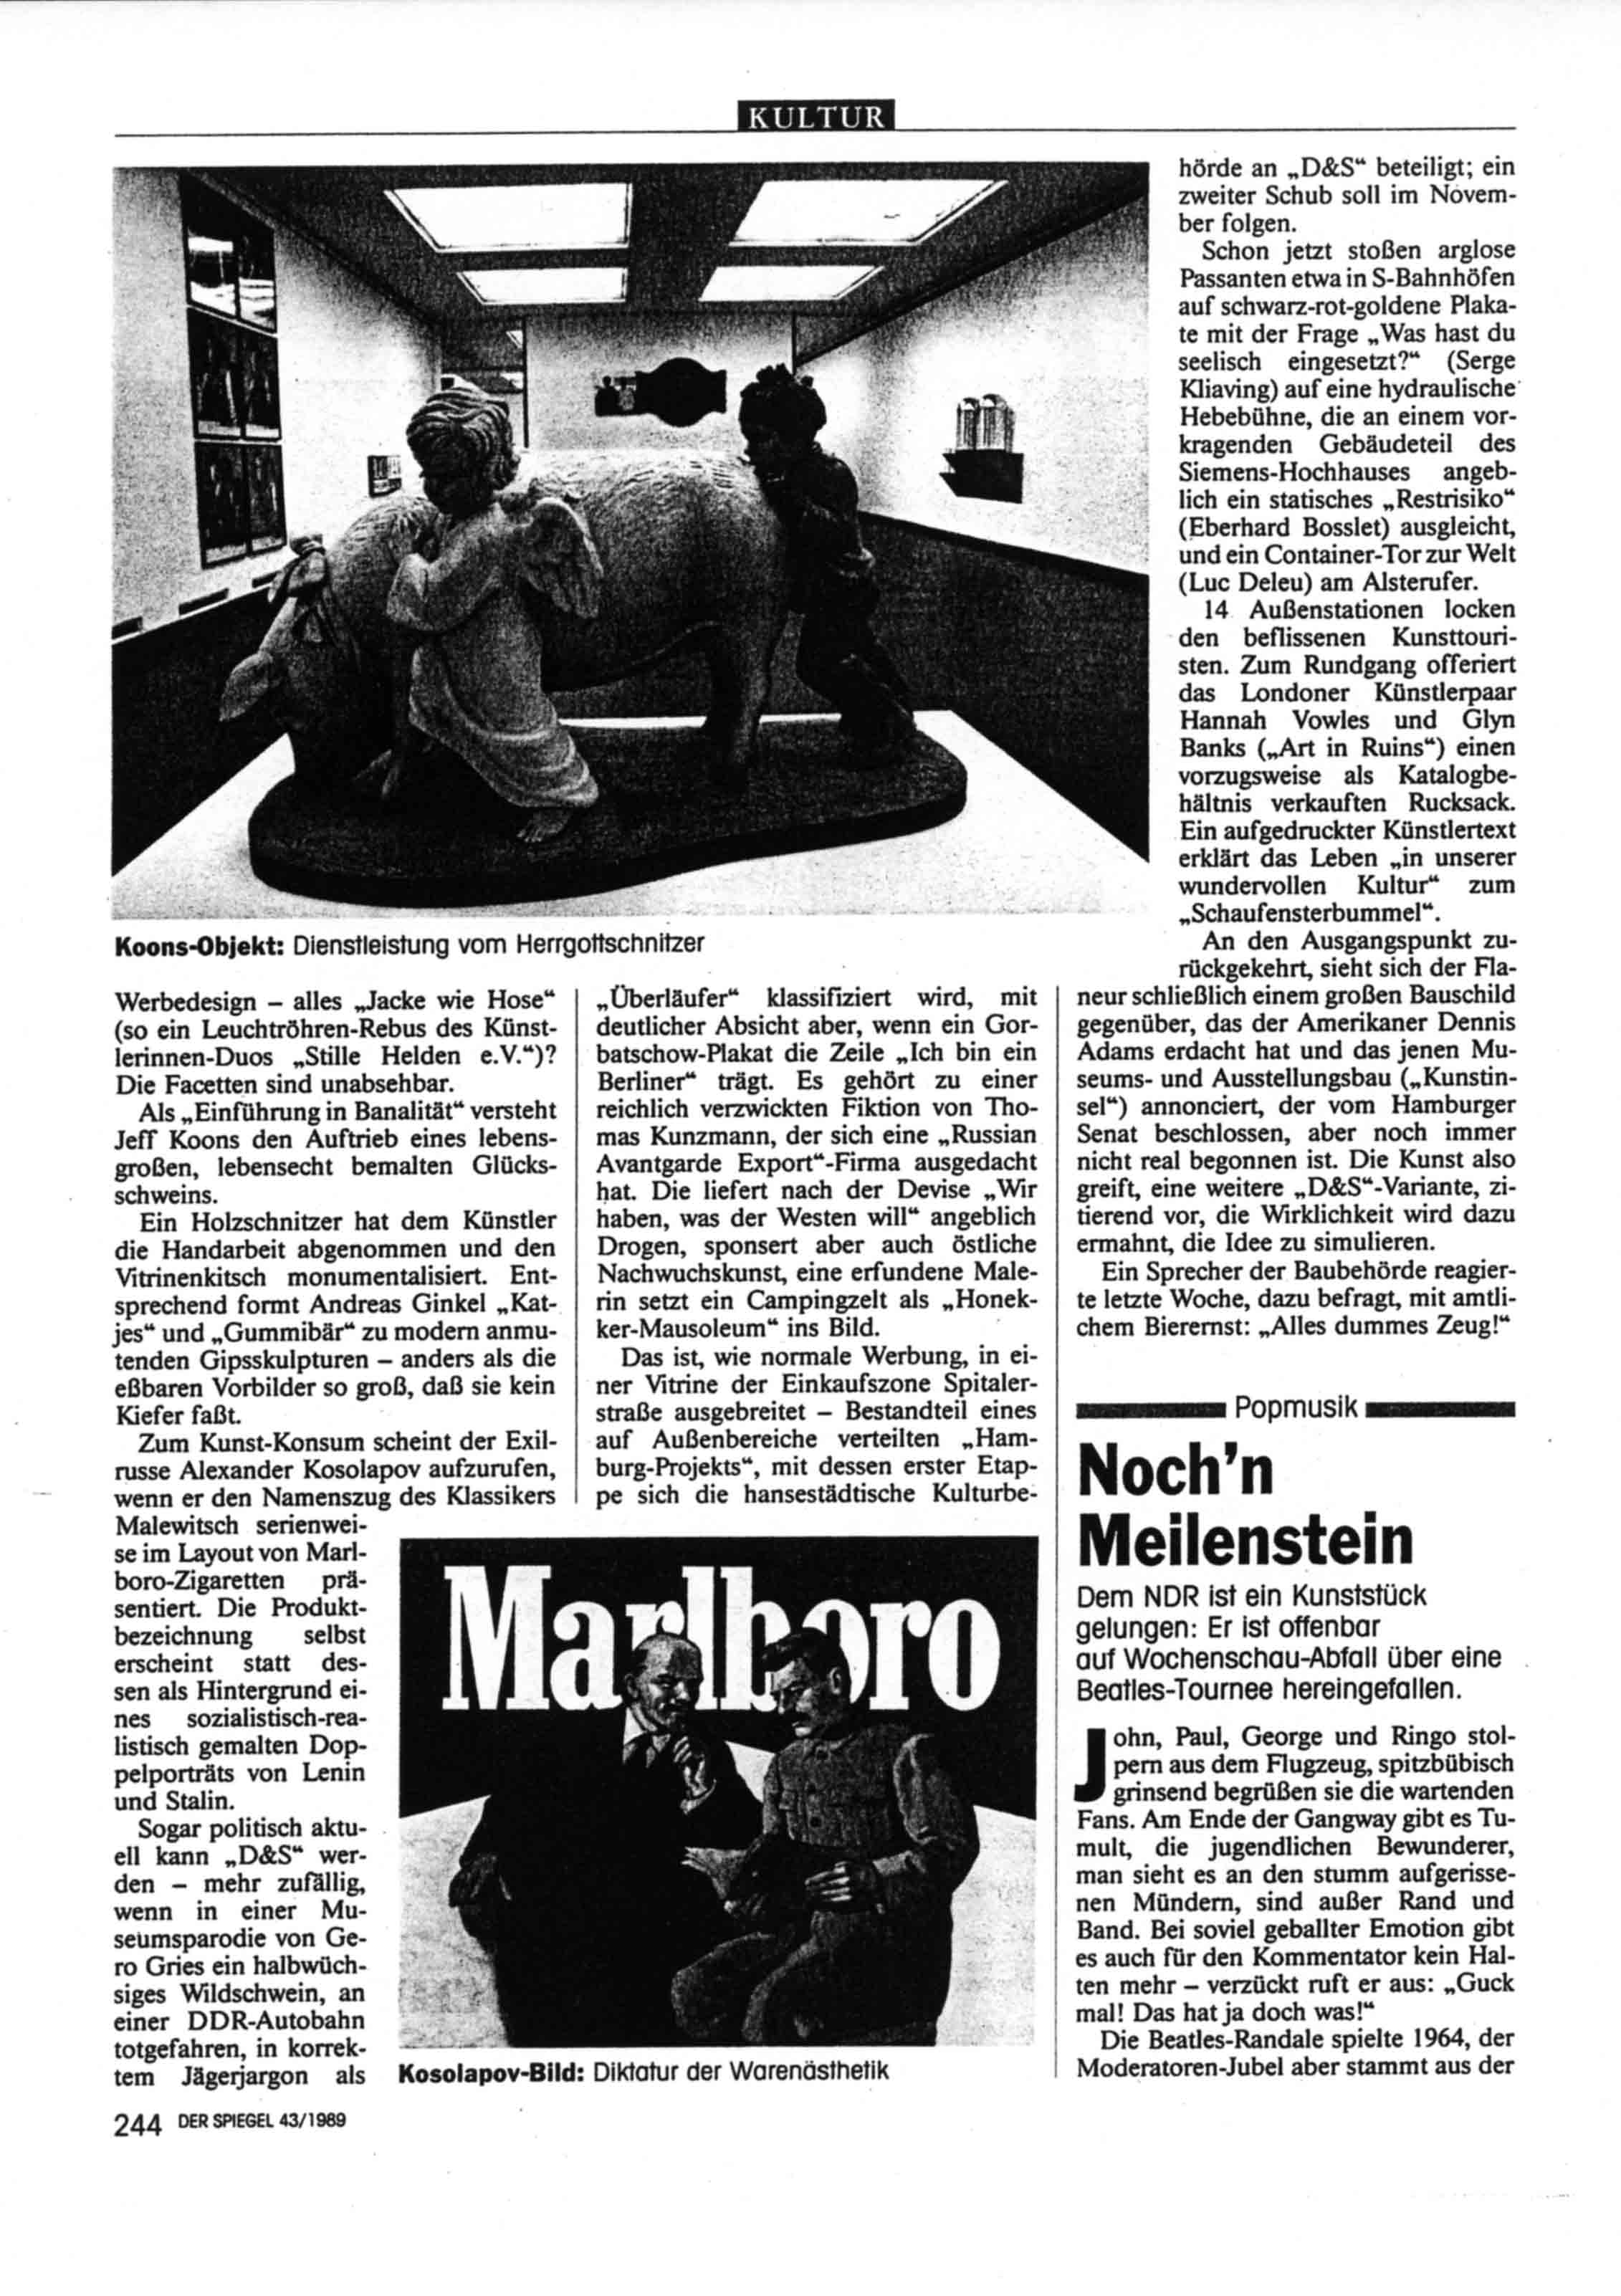 'Gummibar ganz gross'   Review of 'D & S AUSTELLUNG' Der Spiegel  No 43  Oct 23  1989